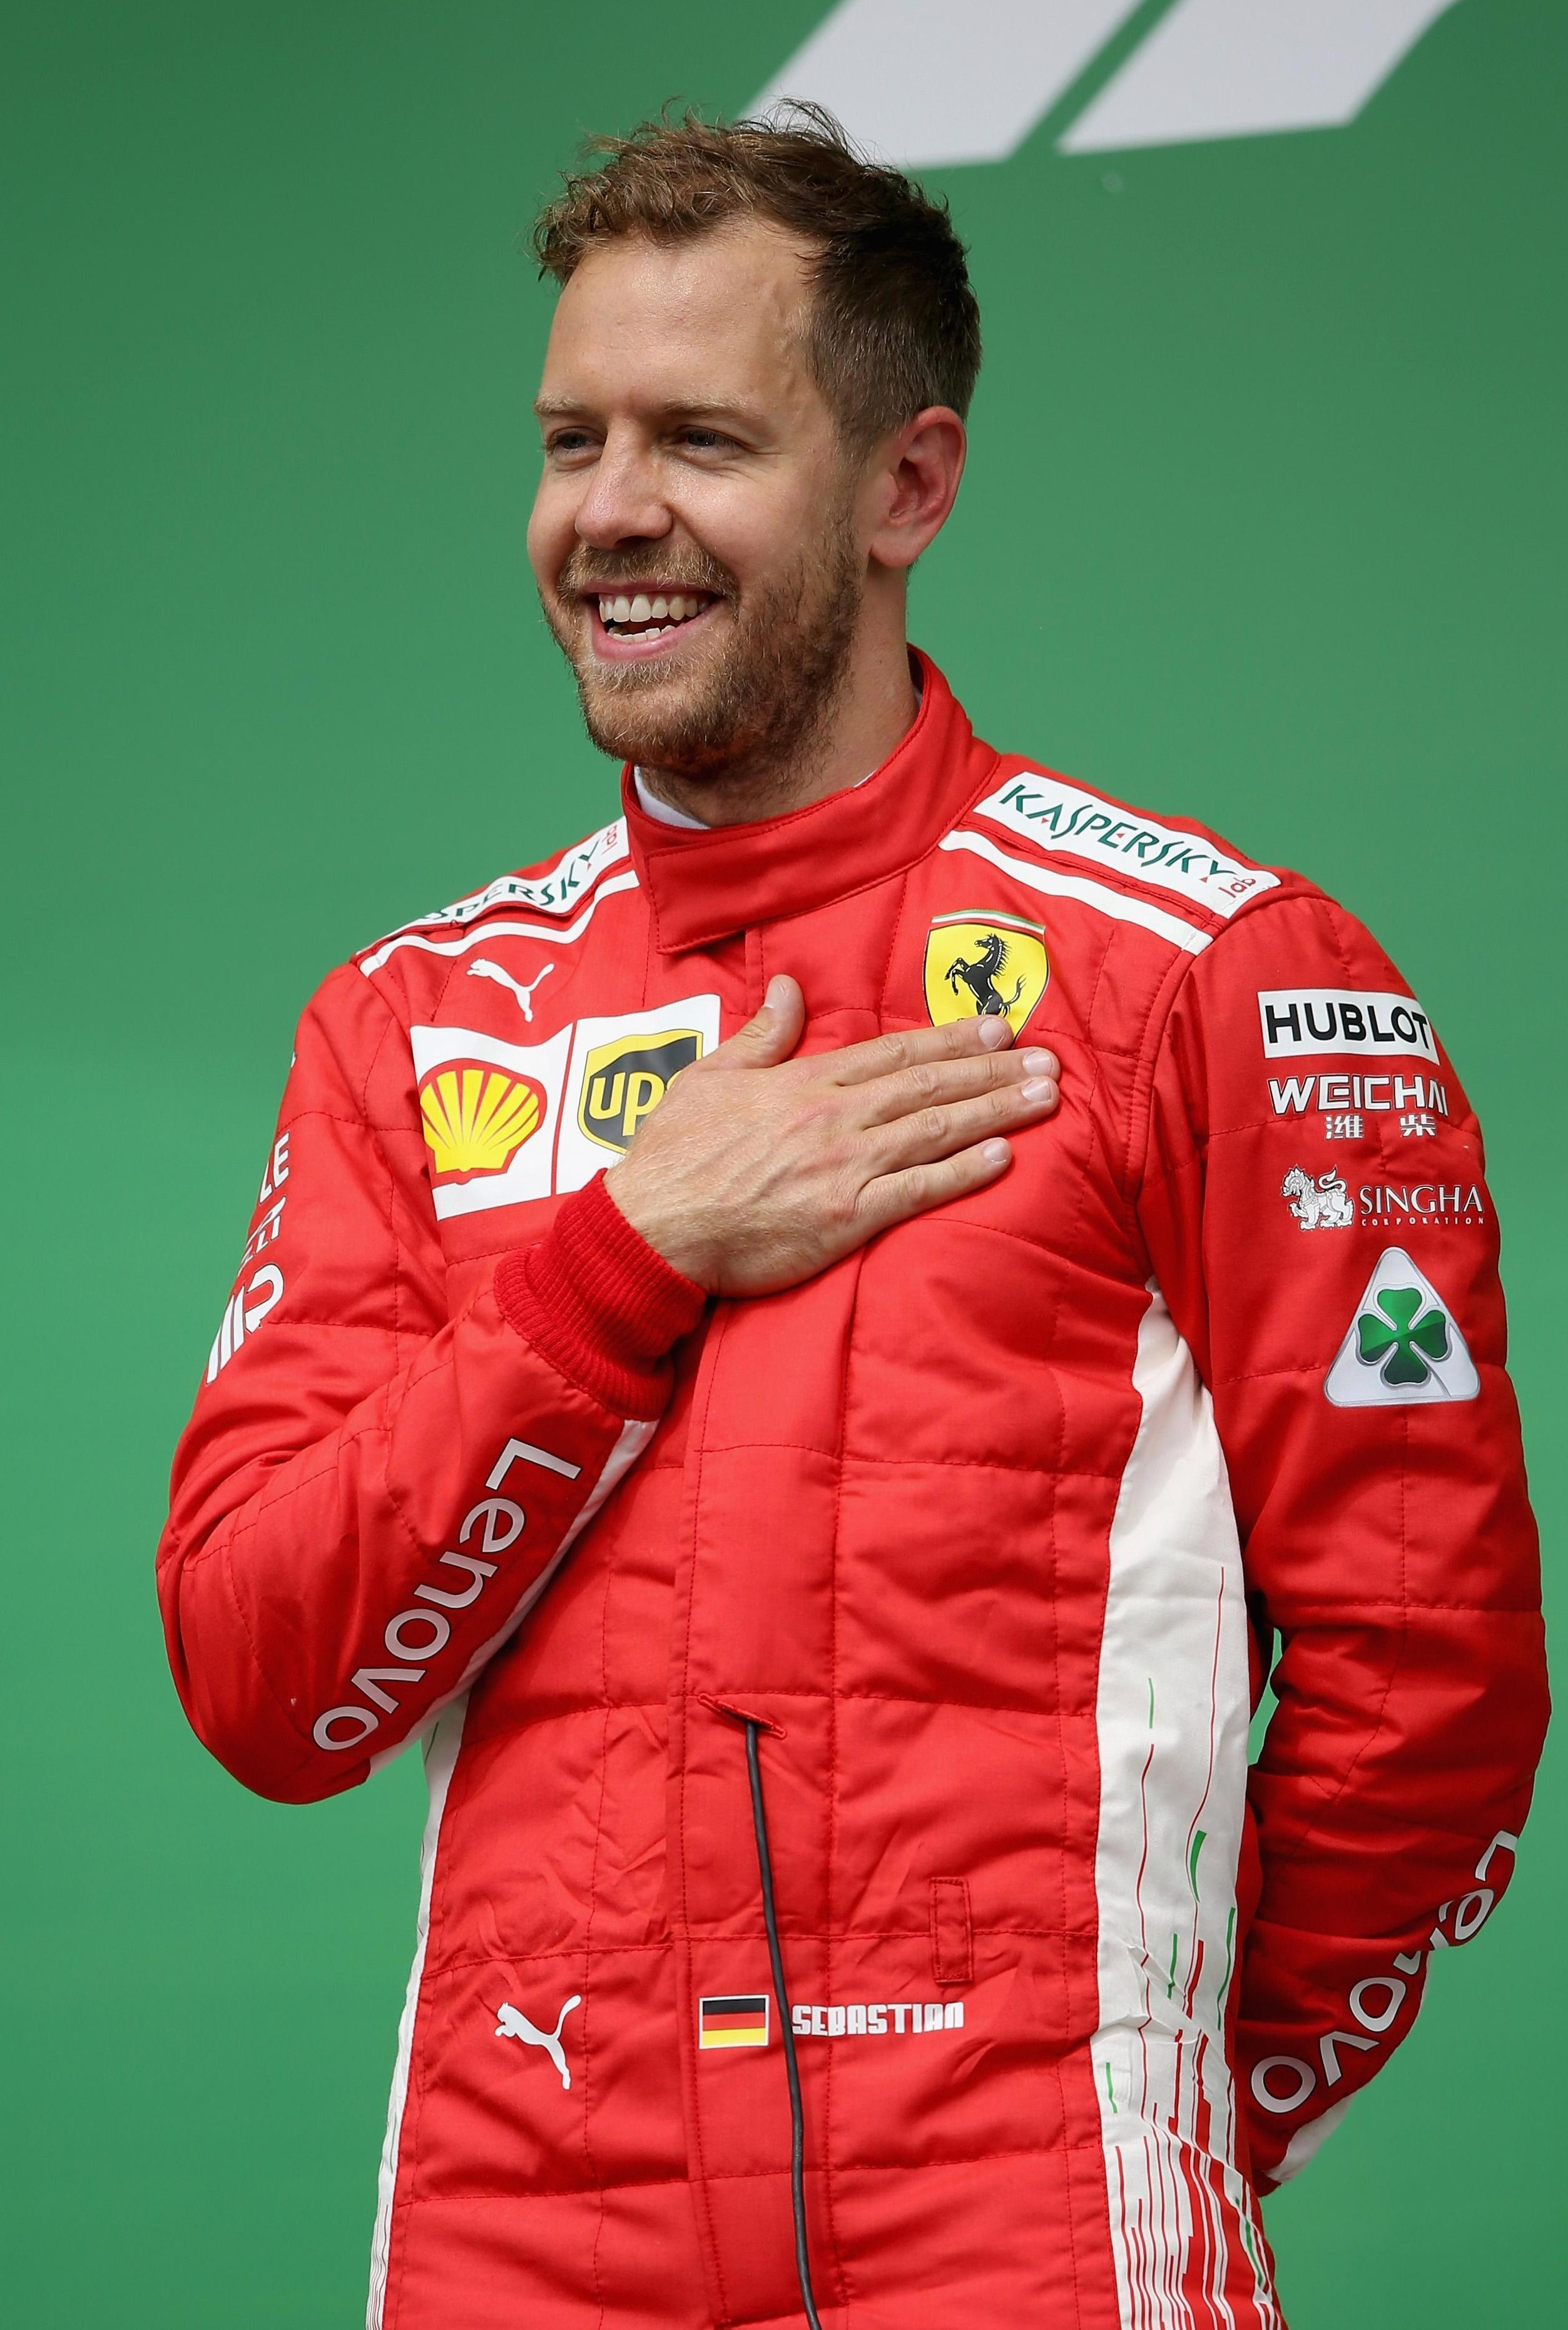 Sebastian Vettel is one point ahead of Hamilton in this year's race for the title